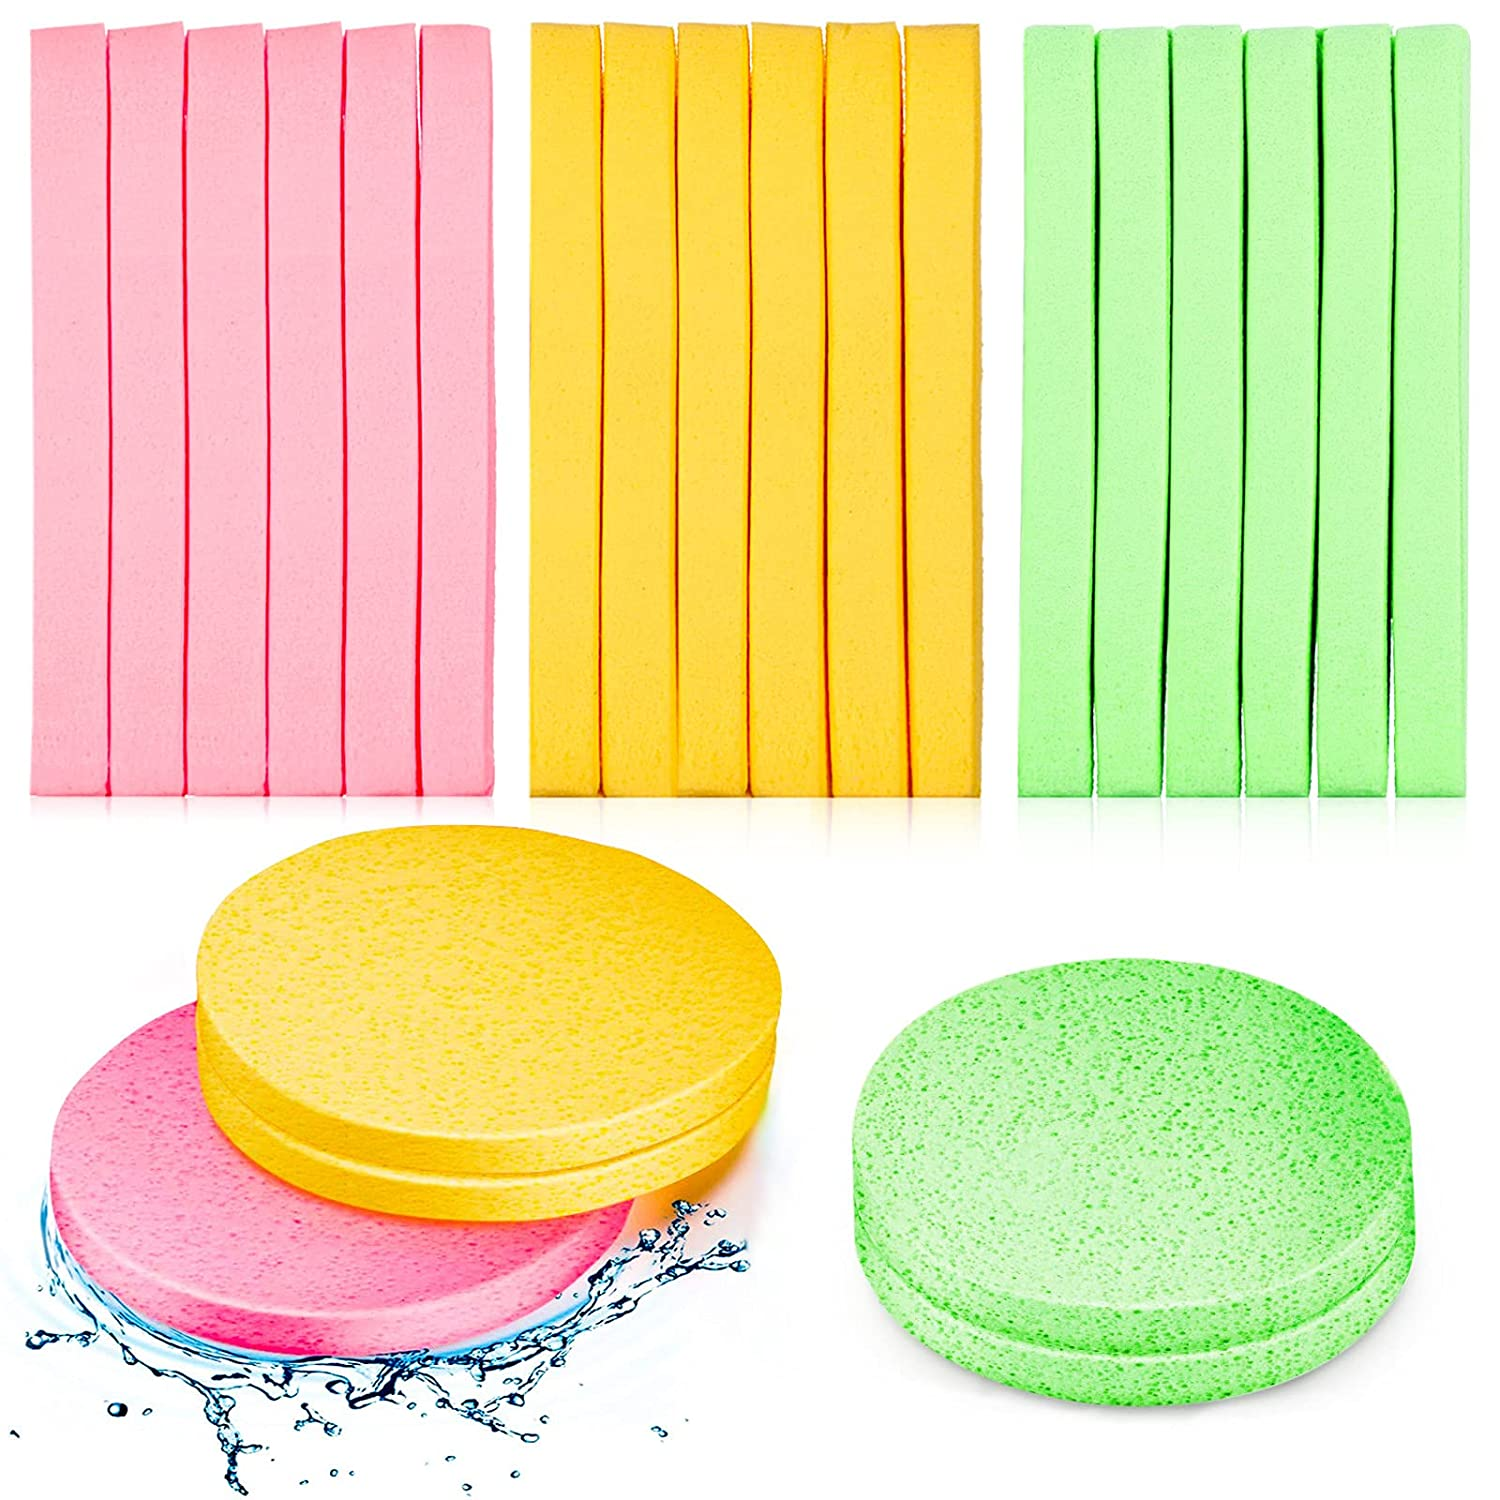 120 Pieces Compressed Facial Sponge Face Cleansing Sponge Makeup Removal Sponge Pad Exfoliating Wash Round Face Sponge (Pink, Yellow, Green)